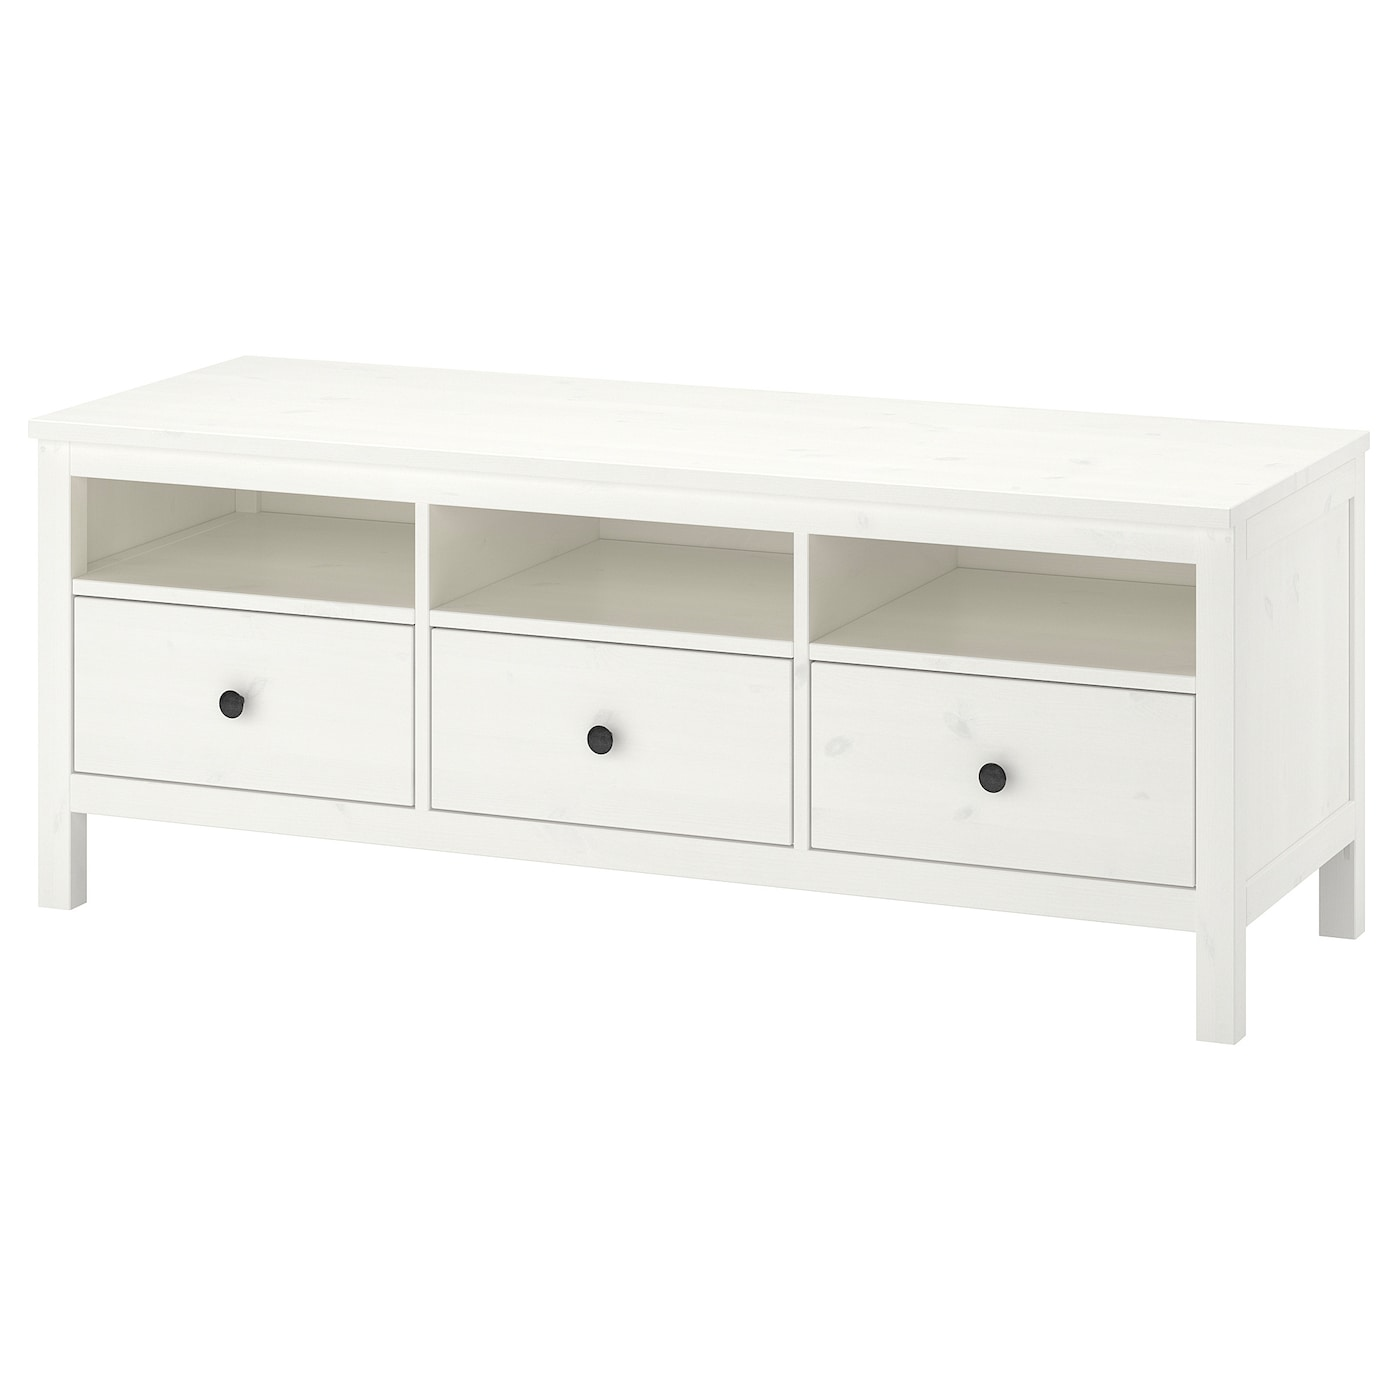 Tv Kast 70 Cm.Hemnes Tv Bench White Stain Ikea